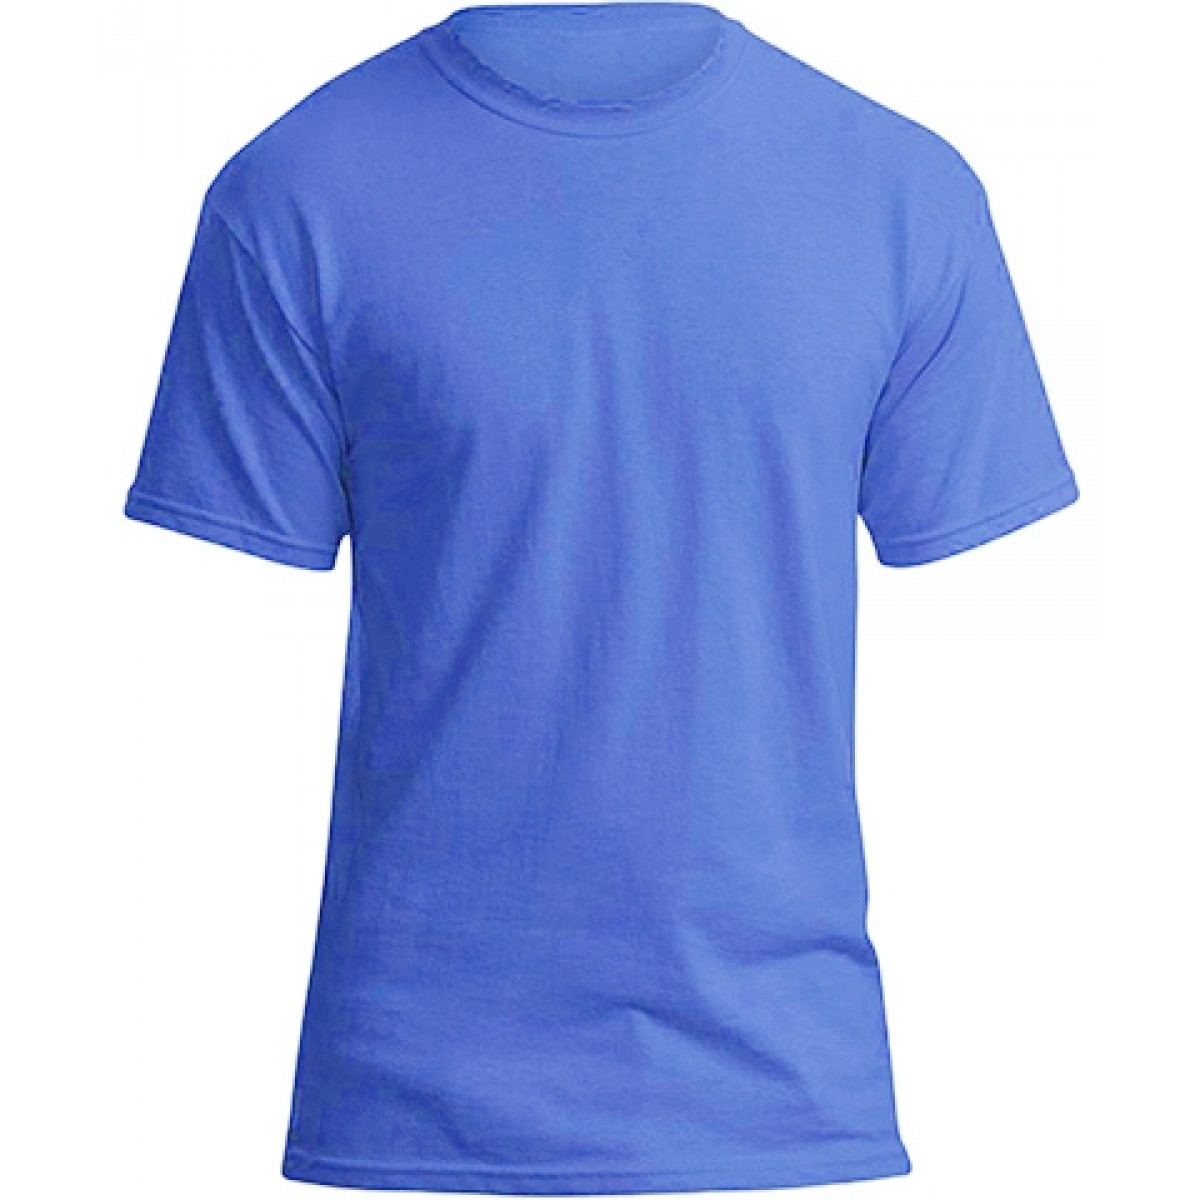 Soft 100% Cotton T-Shirt-Heather Blue-L